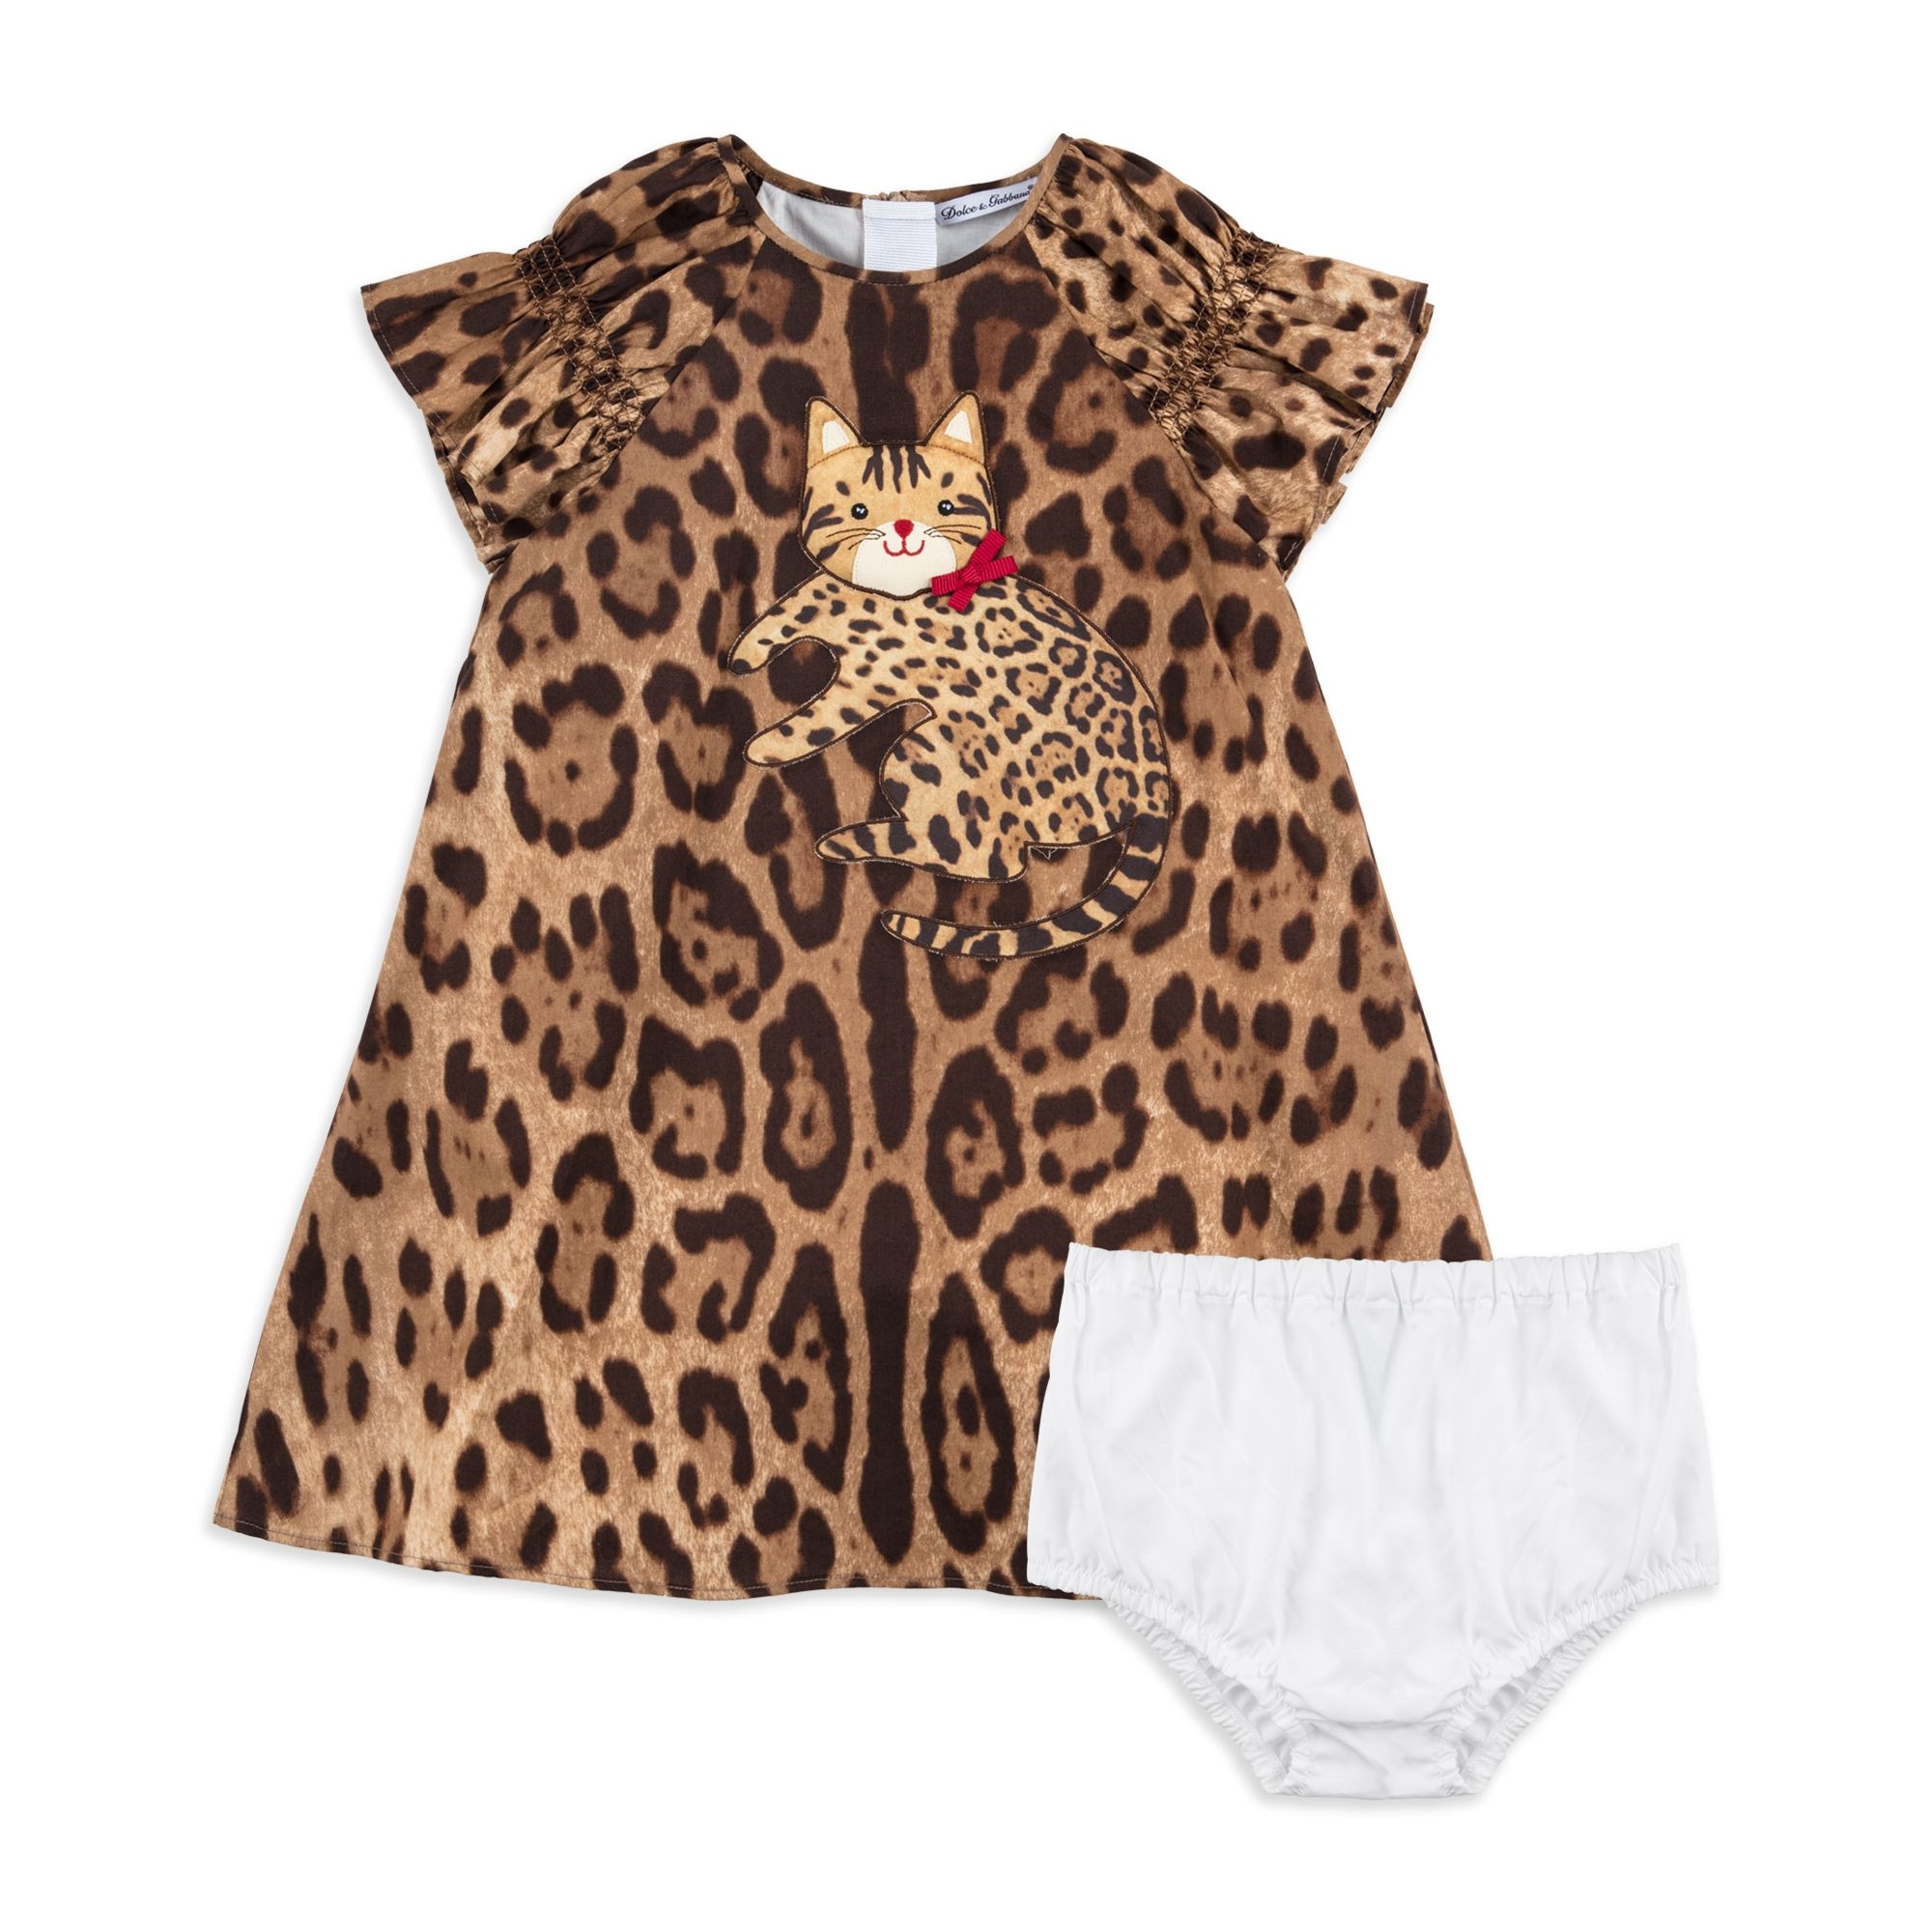 DOLCE & GABBANA Baby Girls Leopard Print Dress Brown £395 Baby